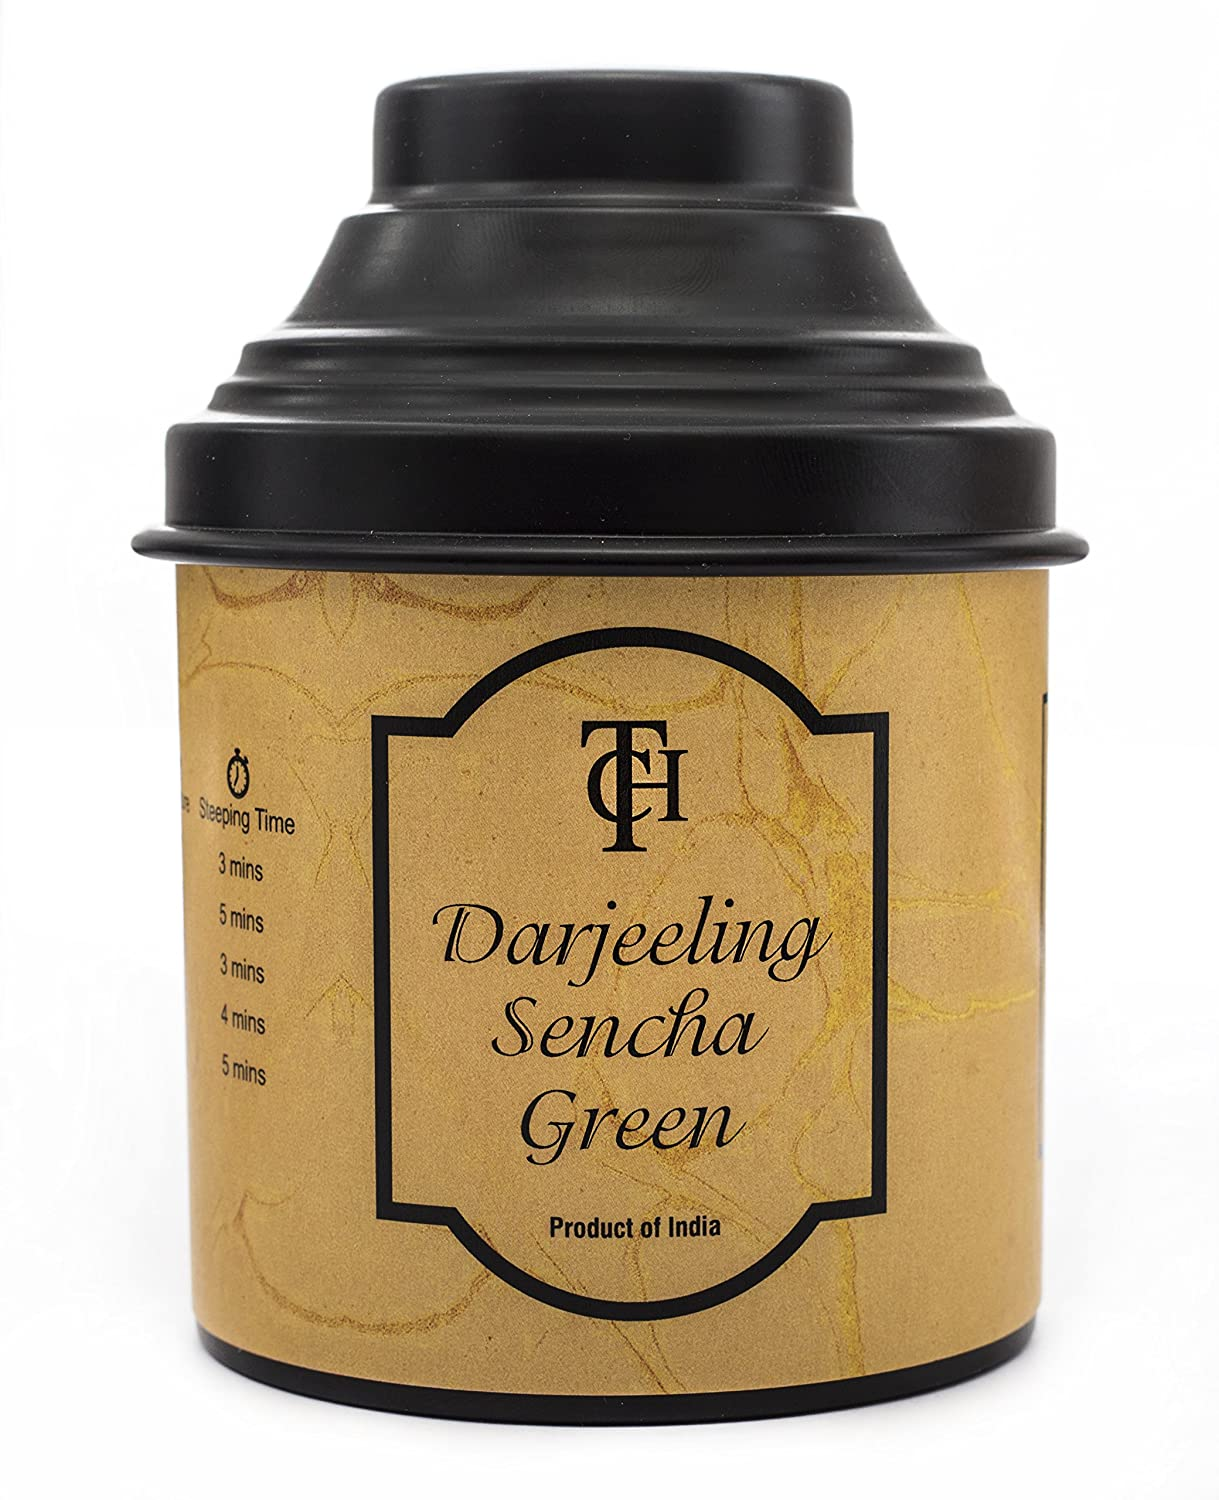 Darjeeling Sencha Green Loose Leaf Tea